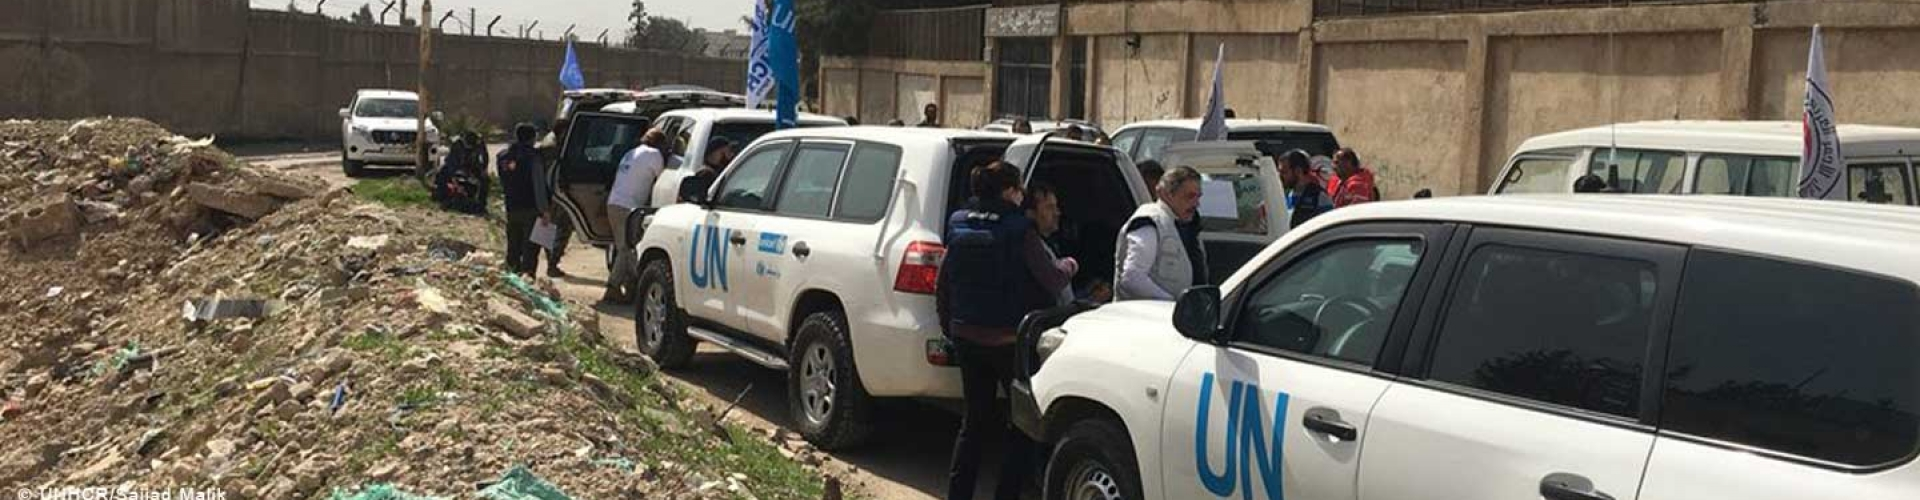 The UN and partners deliver humanitarian assistance to eastern Ghouta Damascus.